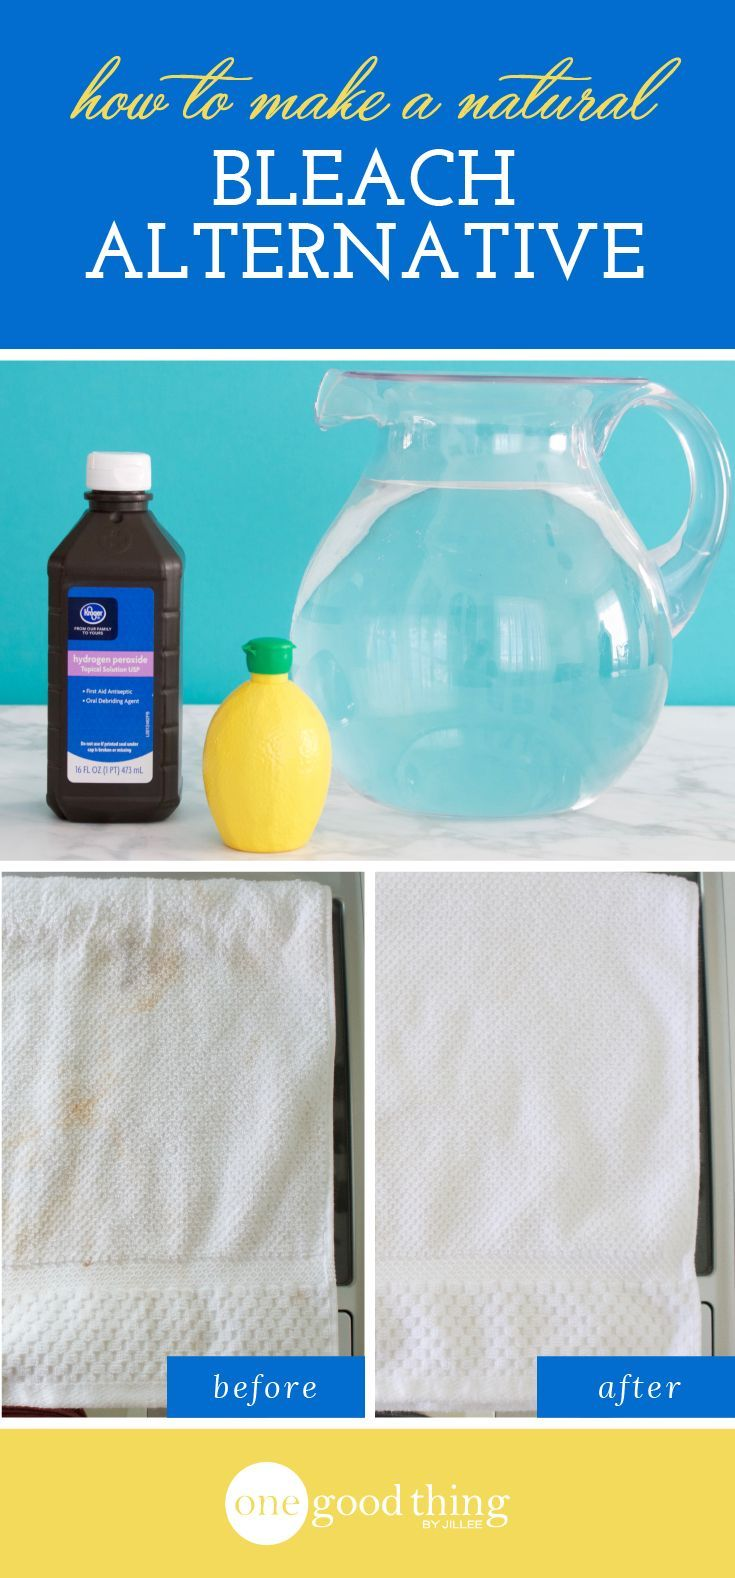 For those that can't use bleach (or choose not to), there's hope! Learn how to make an easy bleach alternative for your cleaning and whitening needs.